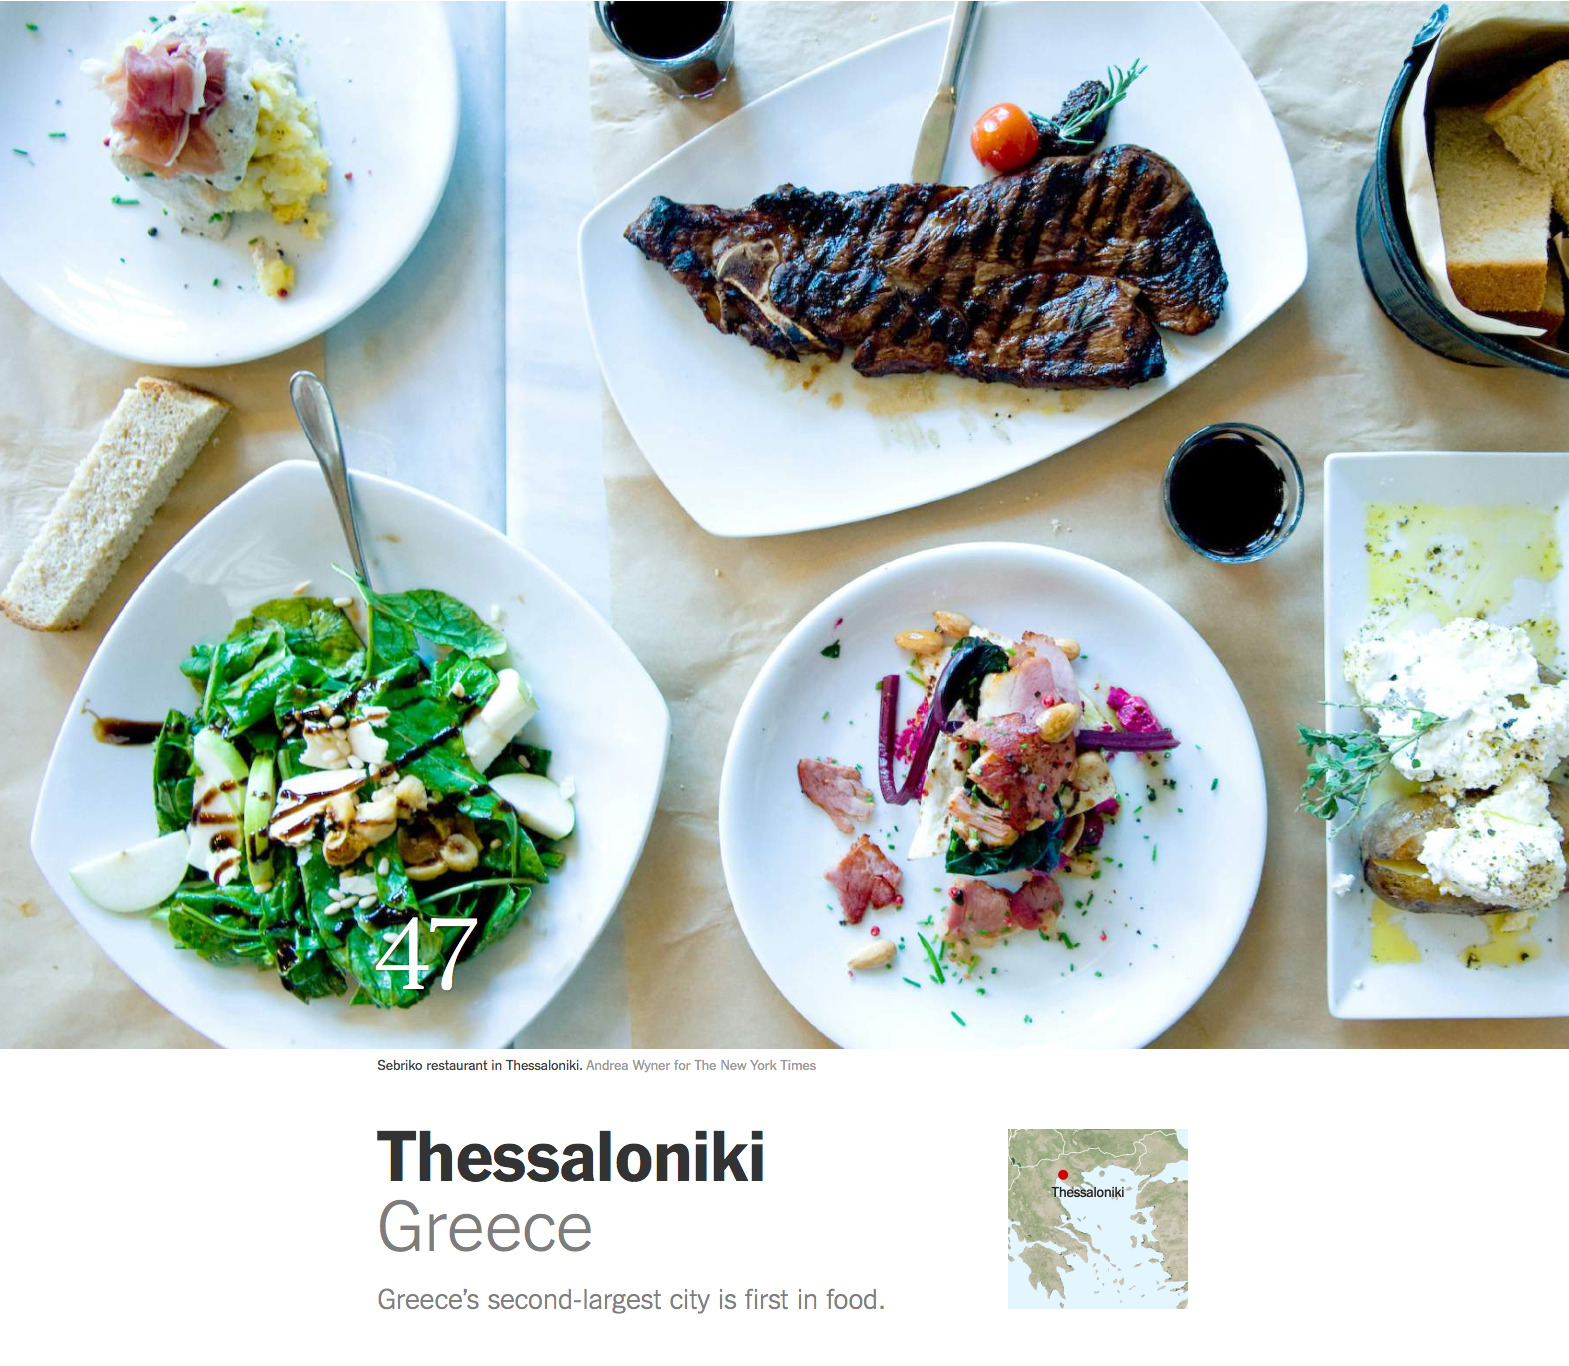 Greece's second-largest city is first in food